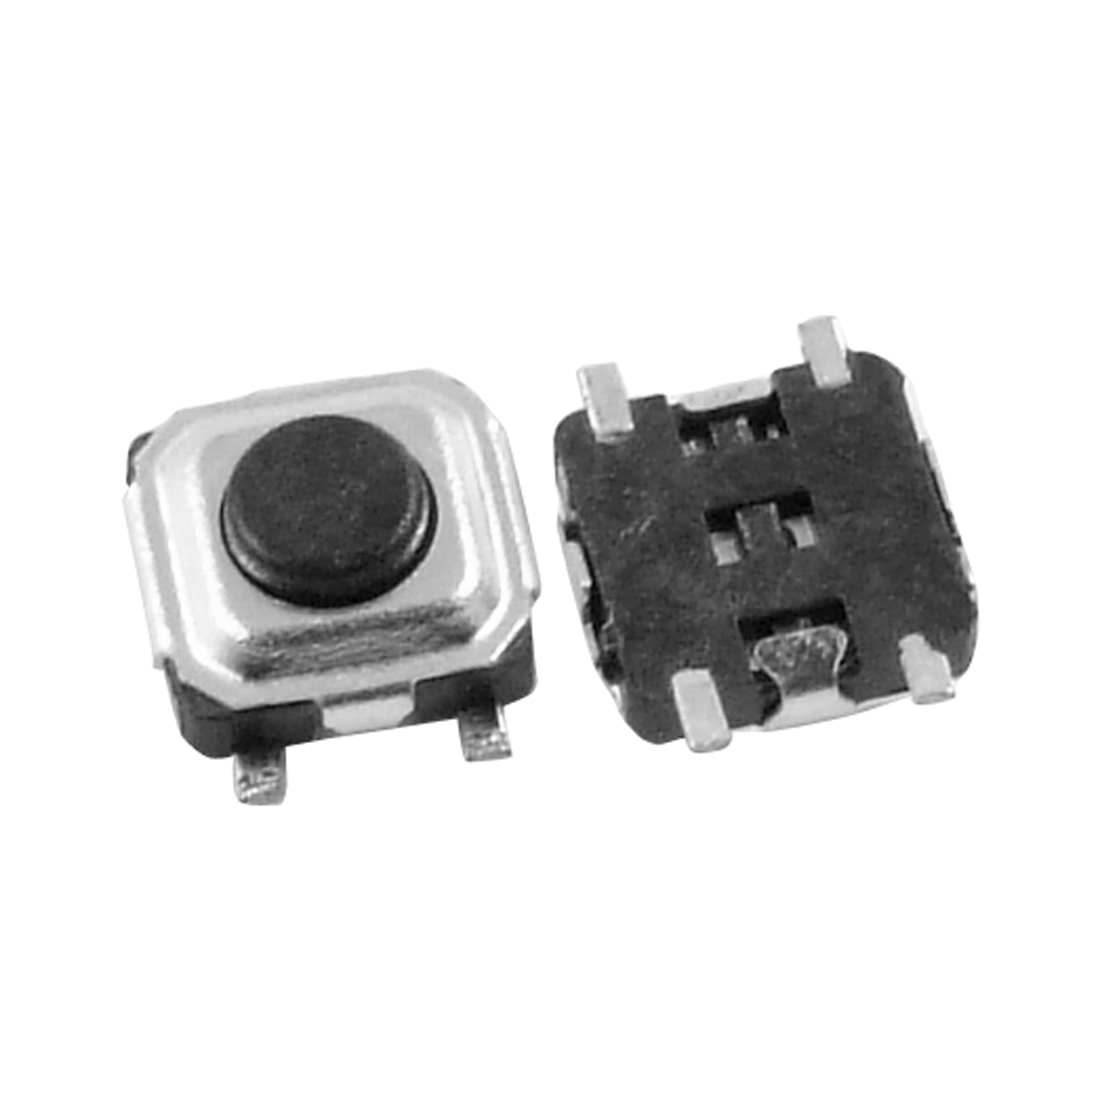 20 Pcs Momentary Tactile Tact Push Button Switch 3 x 3mm x 1.5mm 4 Pin SMD SMT